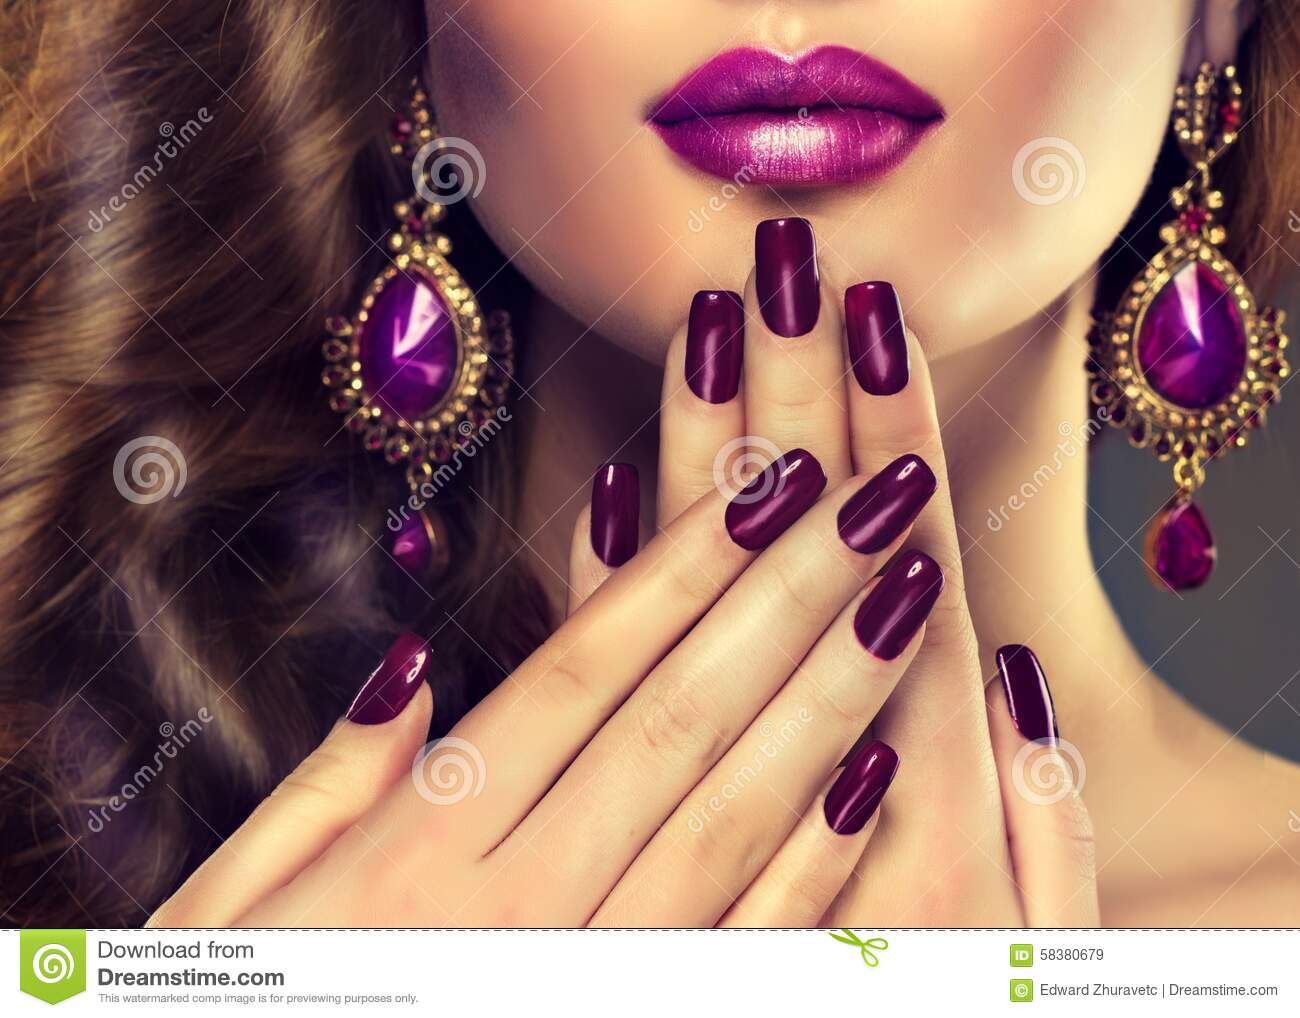 Manicure Stock Photos - Royalty Free Images - Dreamstime